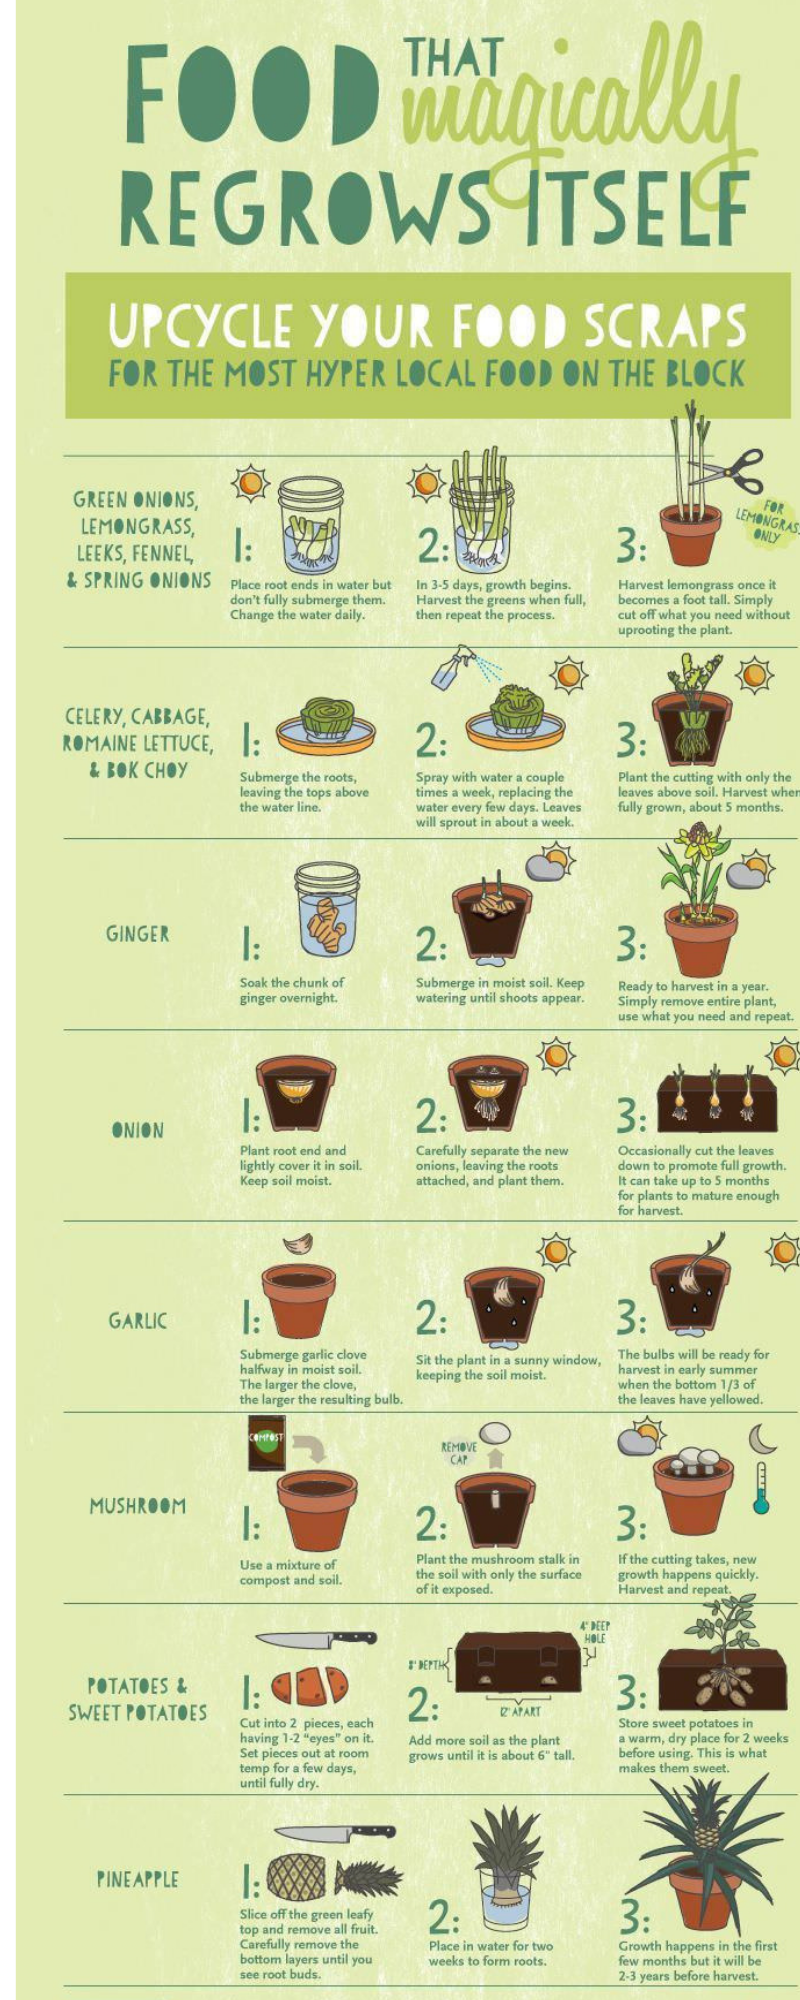 You Can Recycle and Regrow These Food Scraps - Infographic